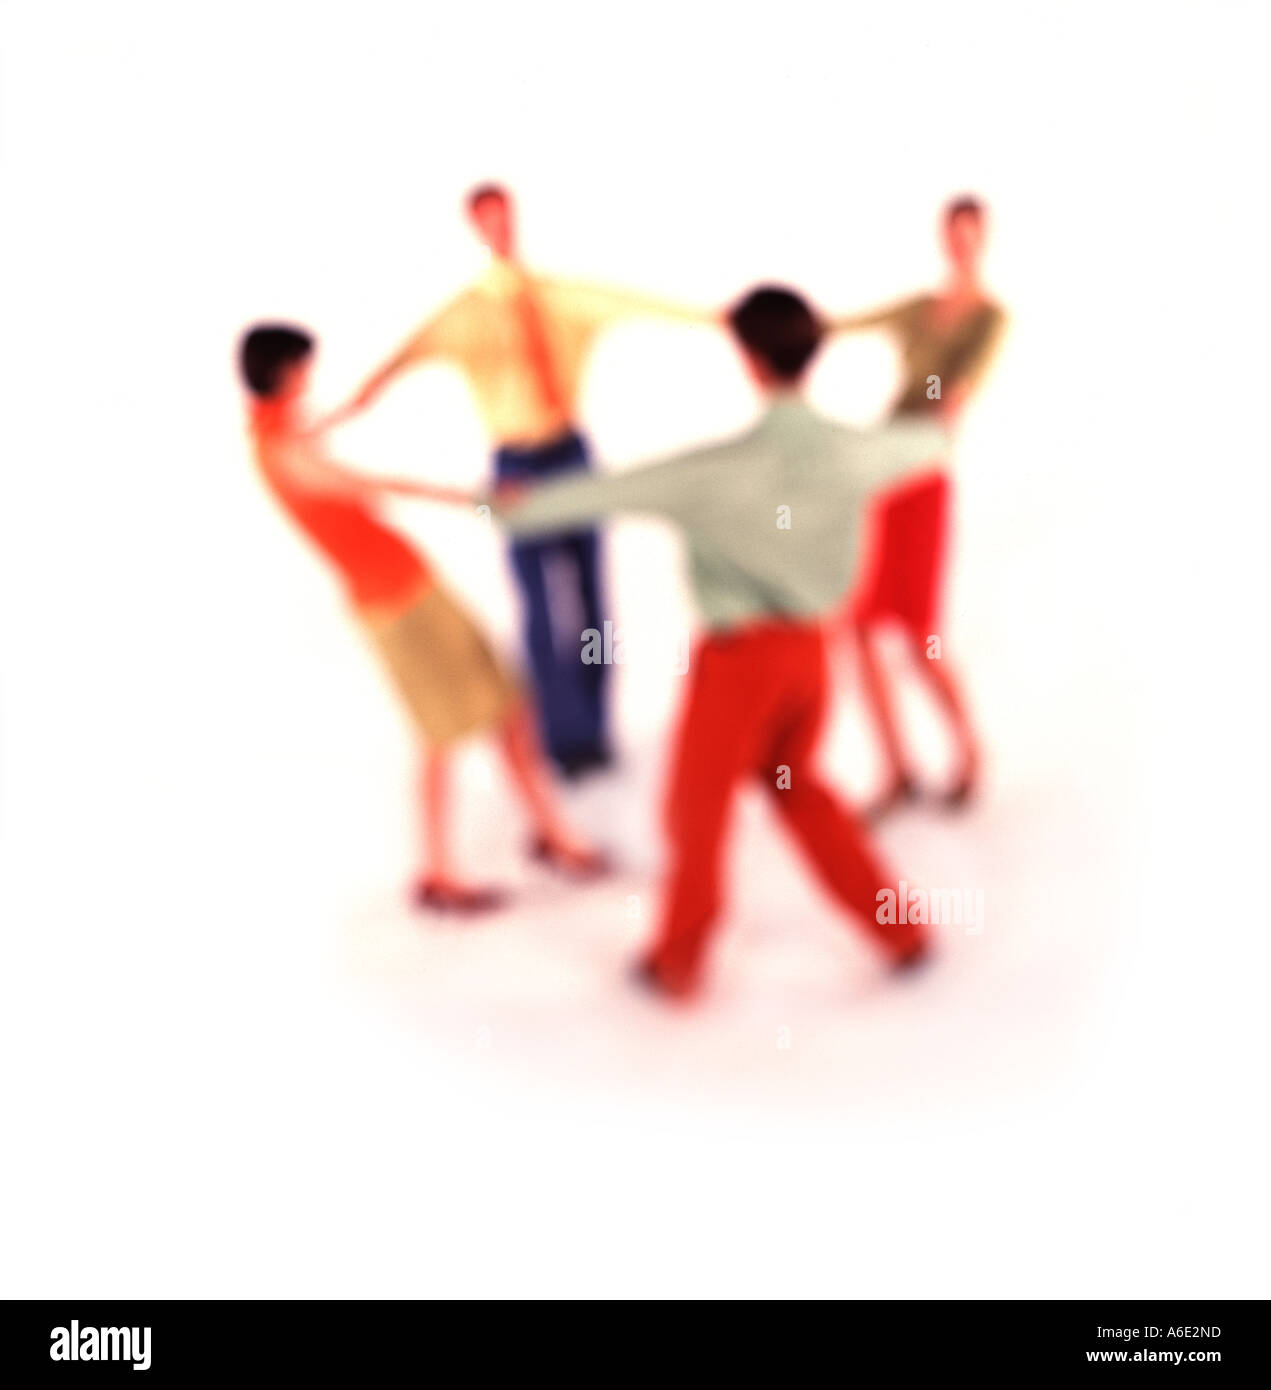 Group of 4 Business people holding hands in circle. Soft Focus. - Stock Image